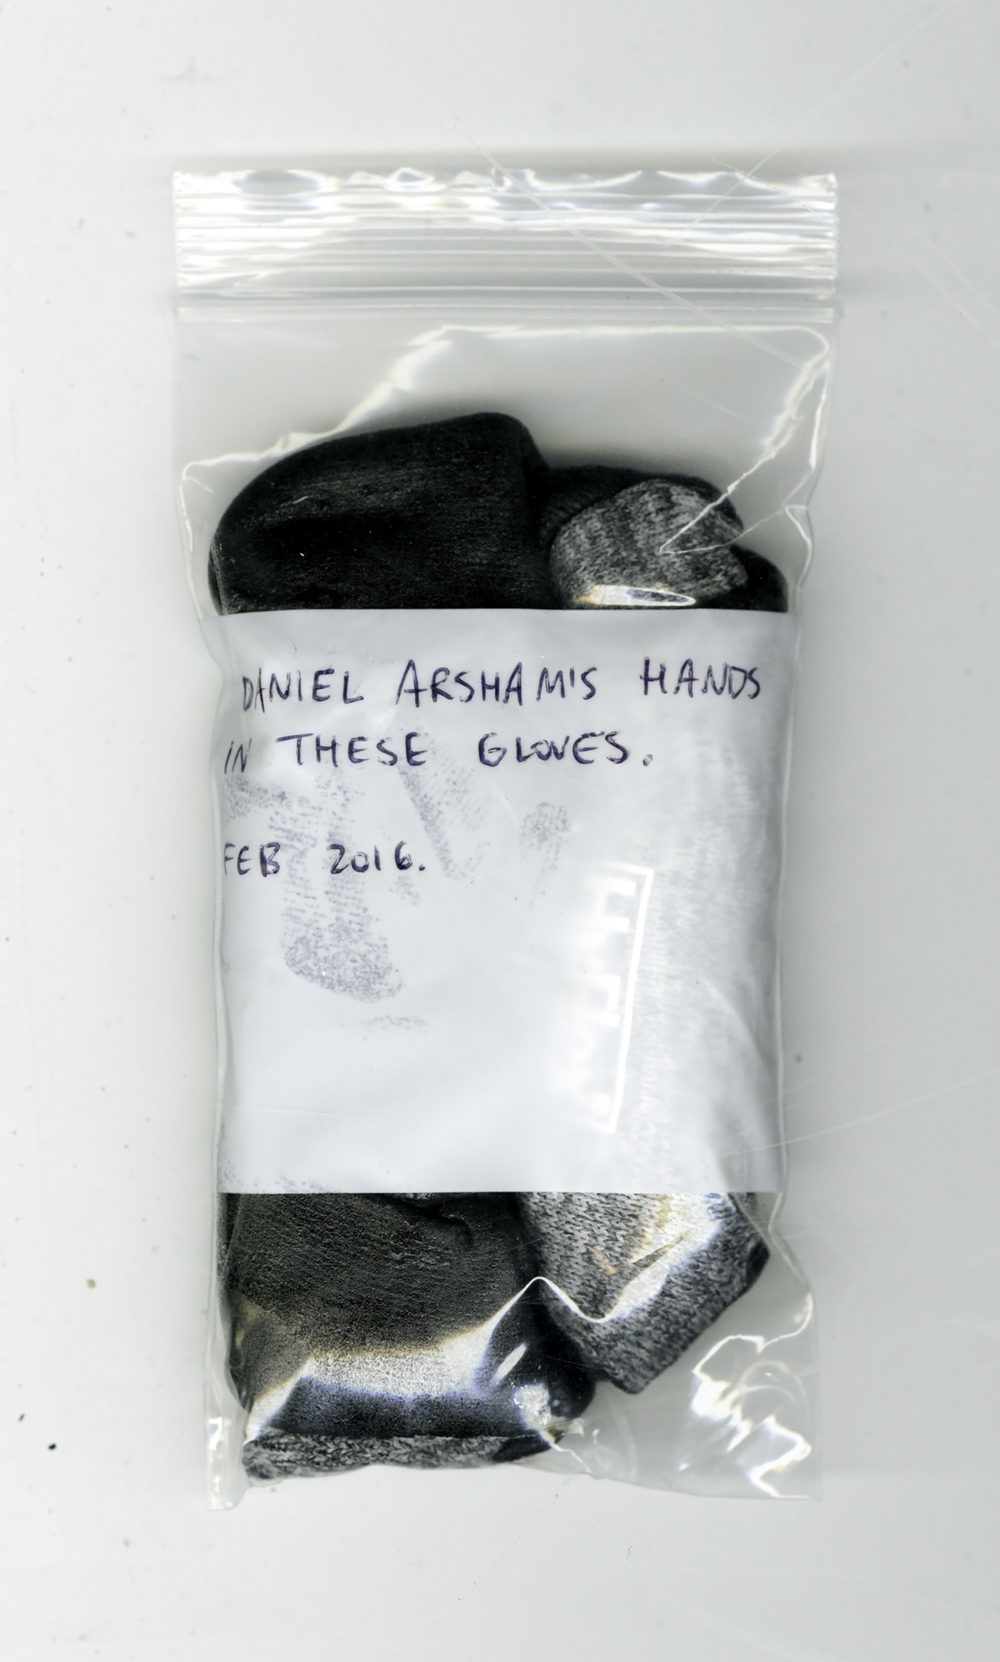 Daniel Arsham's hands in these gloves. Feb 2016. , rubber coated work gloves, bag, 2016